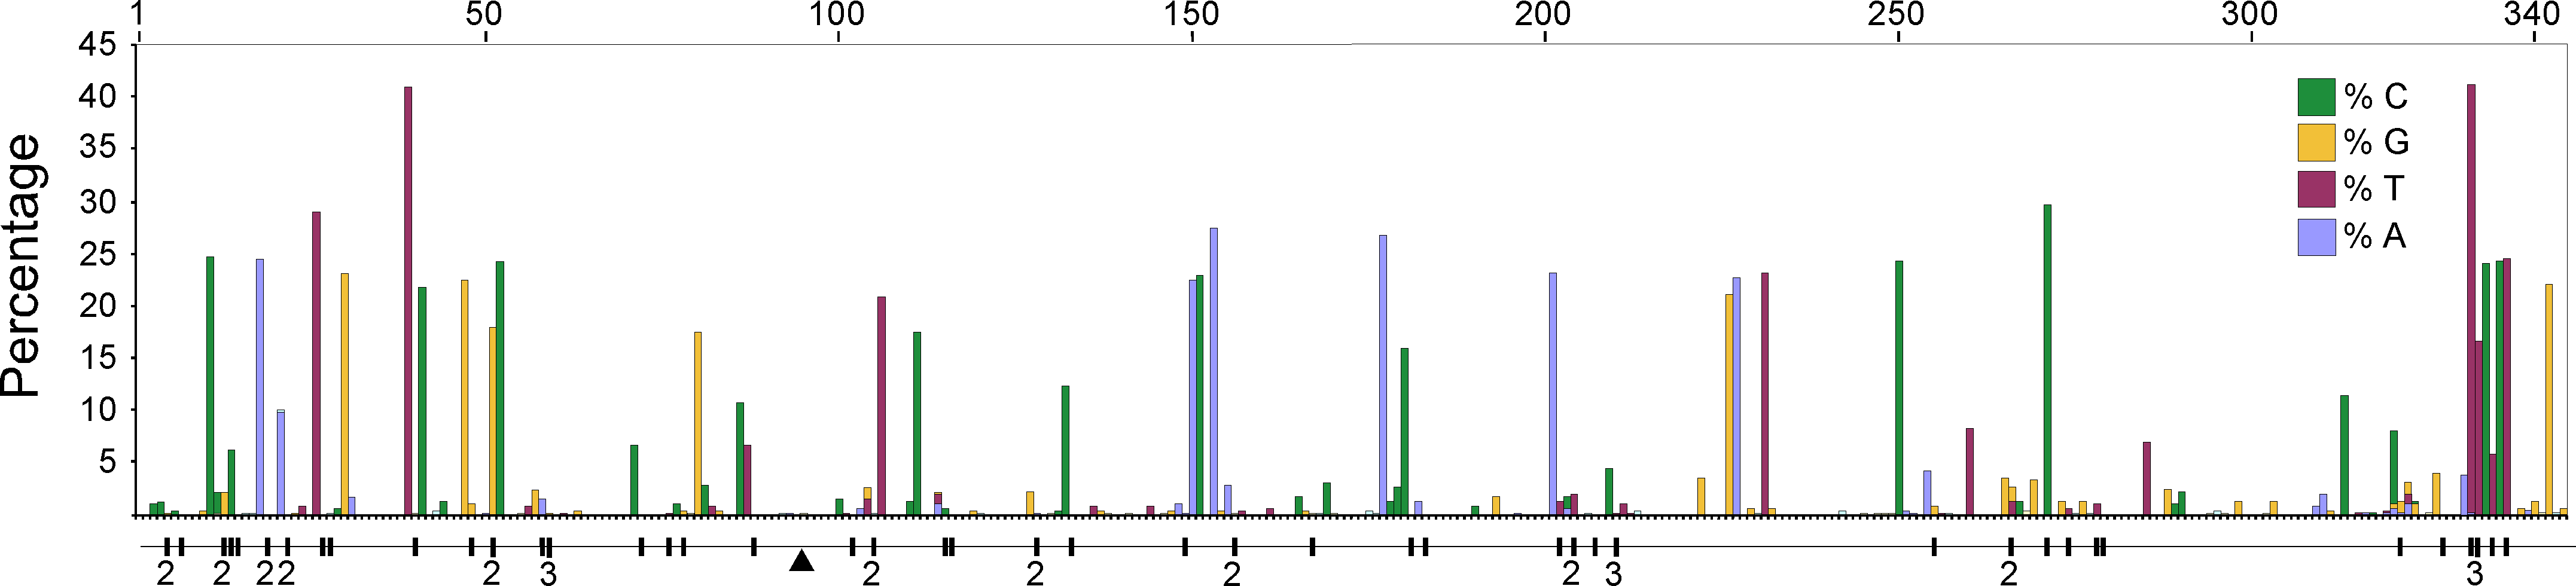 A plot of the frequency of the non-majority nucleotide bases across the 344 bp region of the HVR I for all adult penguins examined in this study.